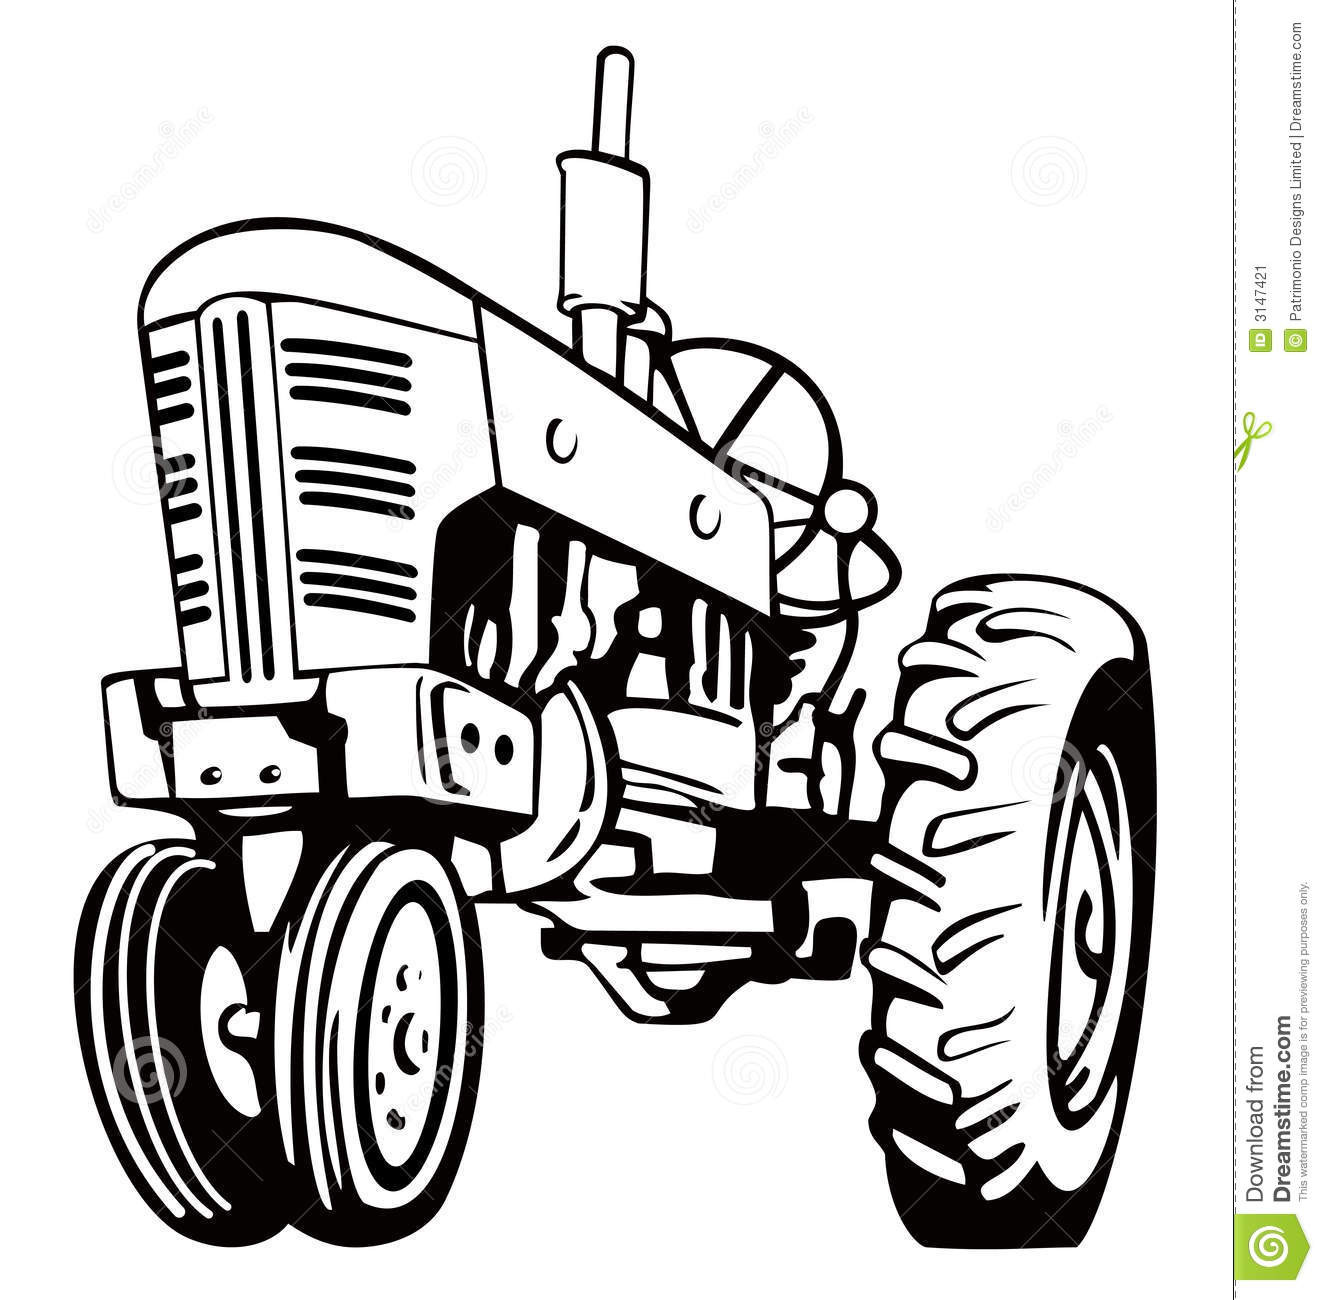 Antique john deere tractor clipart png freeuse library John Deere Tractor Clipart | Free download best John Deere Tractor ... png freeuse library